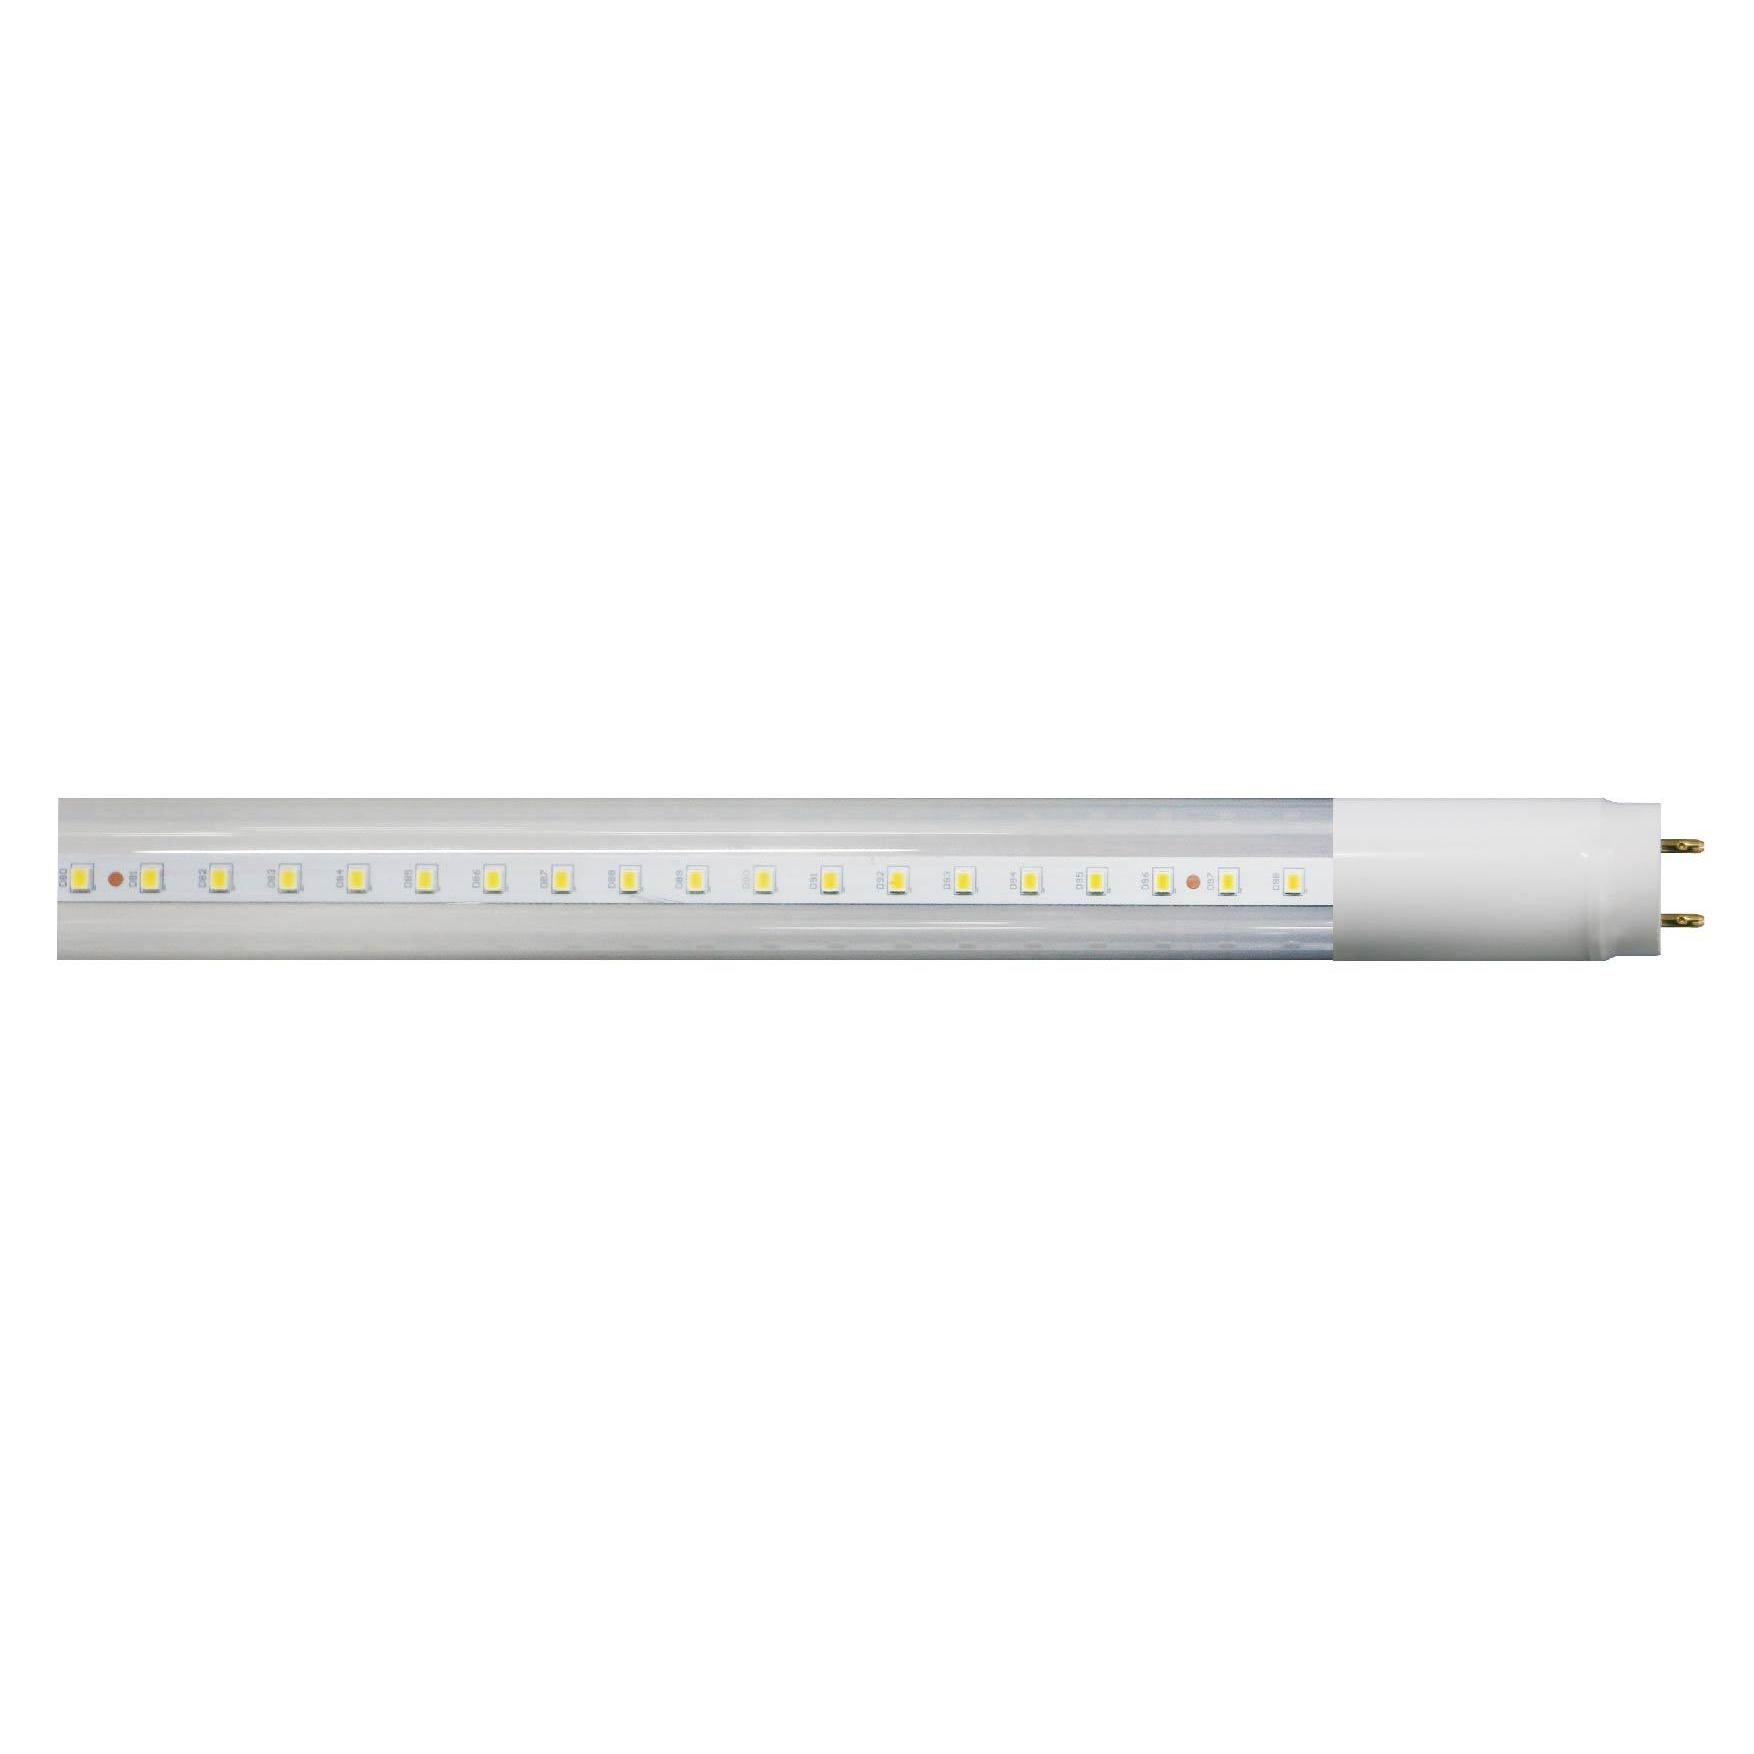 Goodlite 9W LED 24-inch T12 and T8 Fluorescent Replacemen...